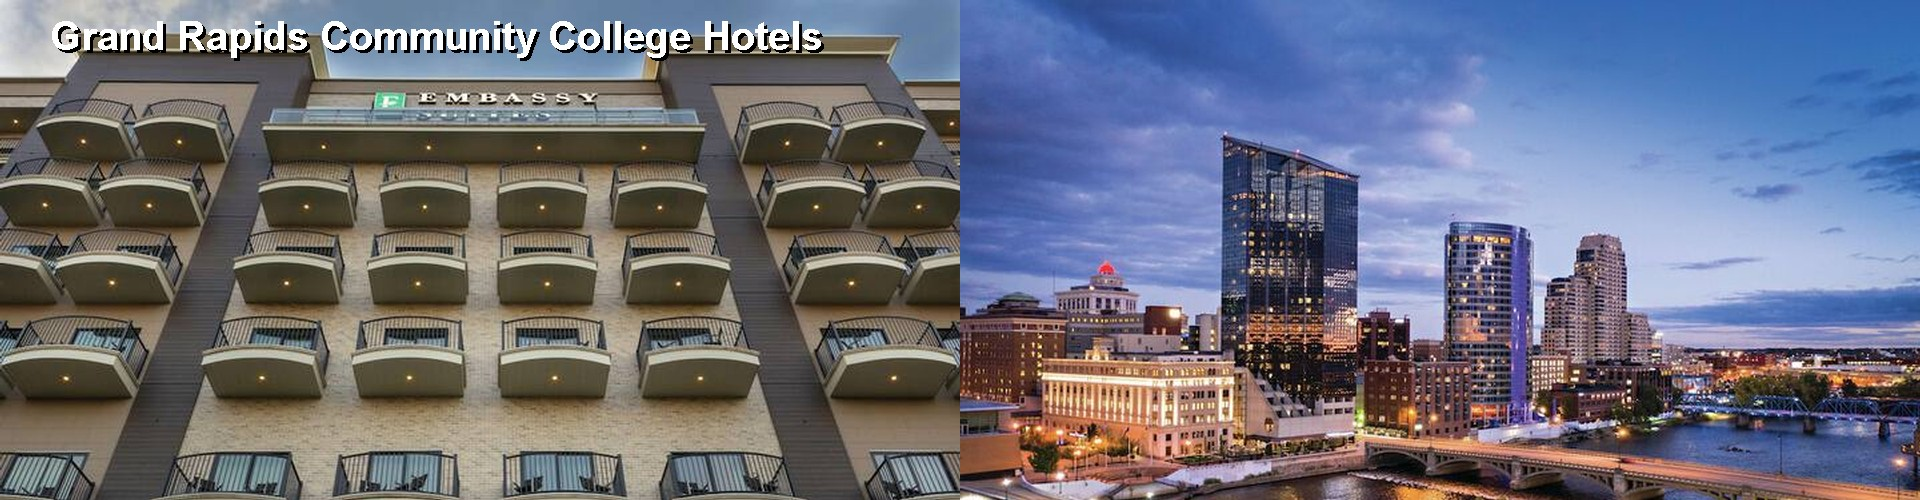 5 Best Hotels near Grand Rapids Community College